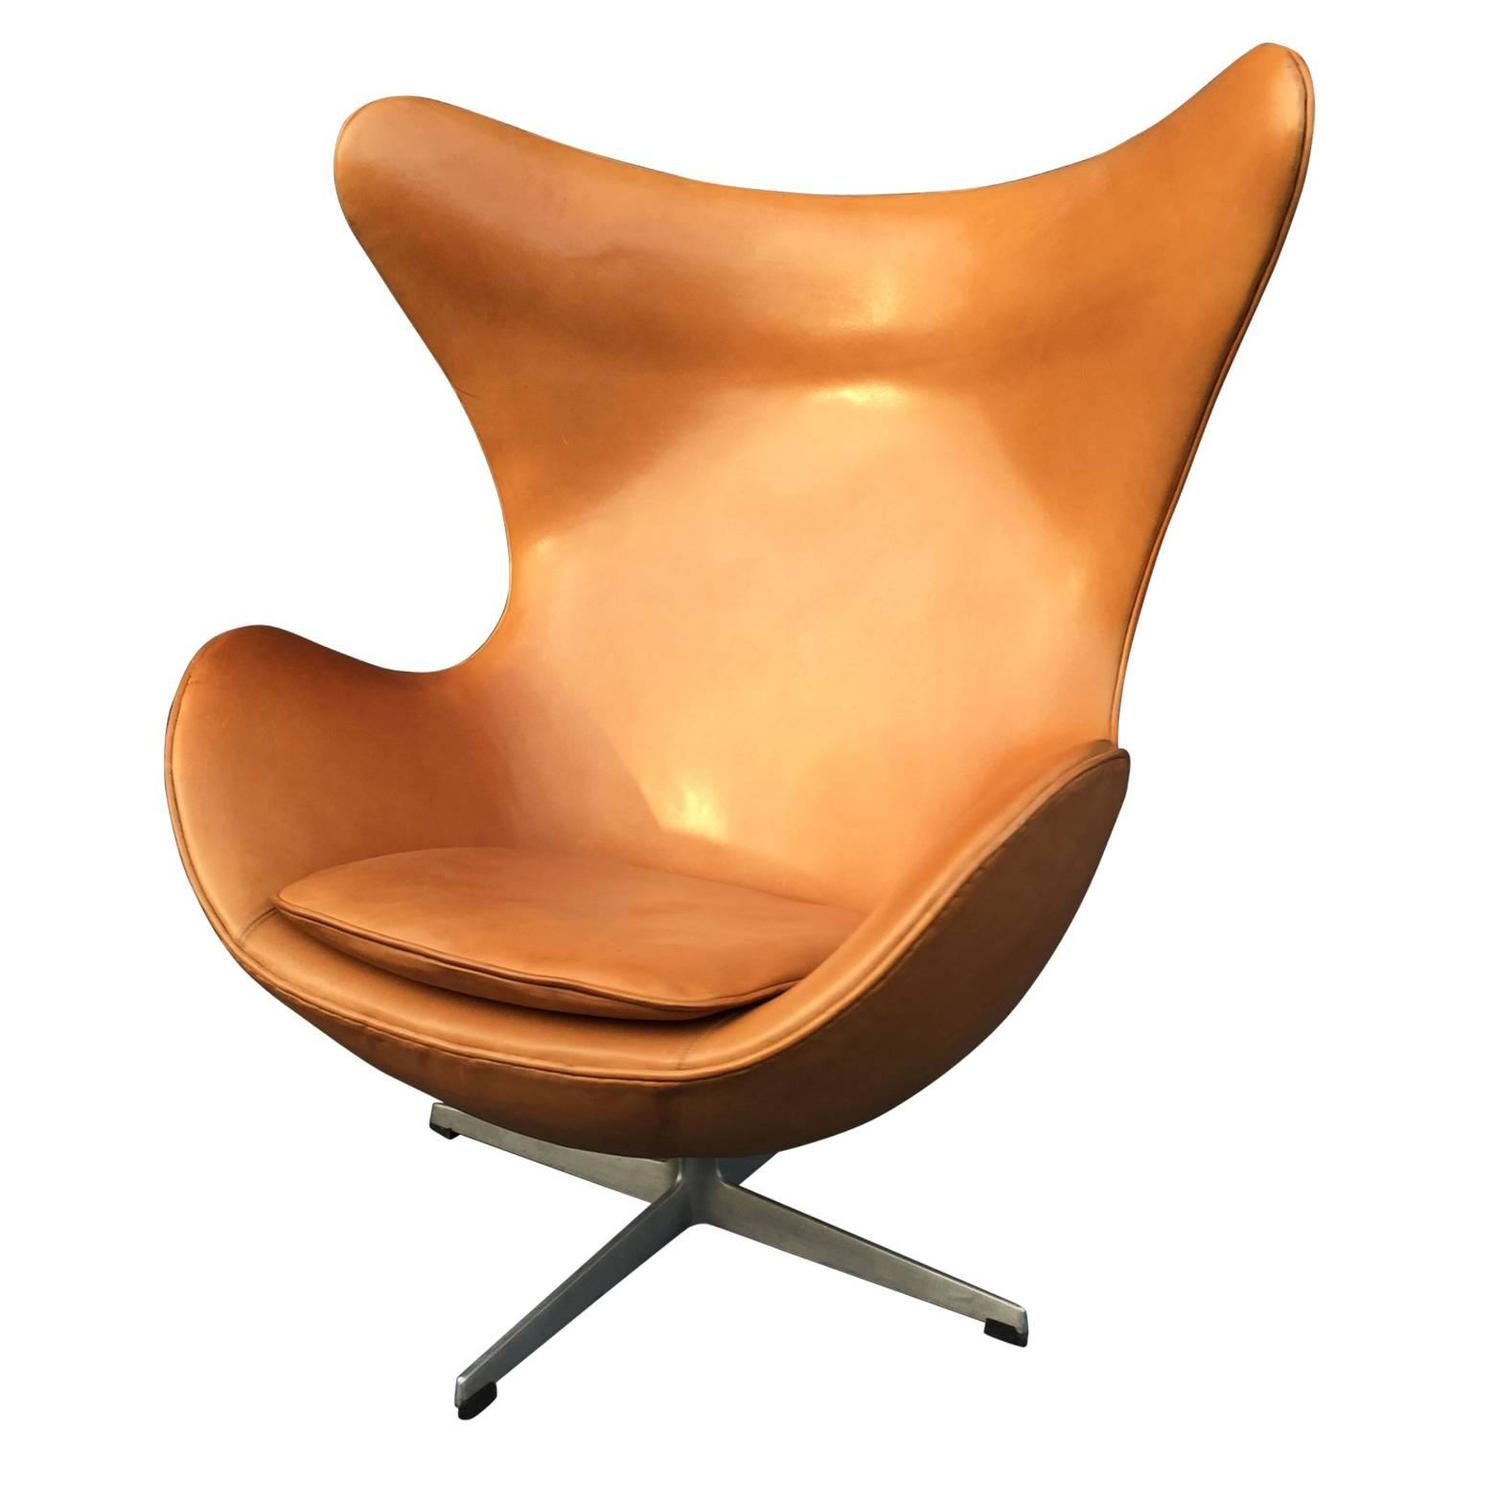 Egg chair and footstool by arne jacobsen at 1stdibs for Egg chair jacobsen